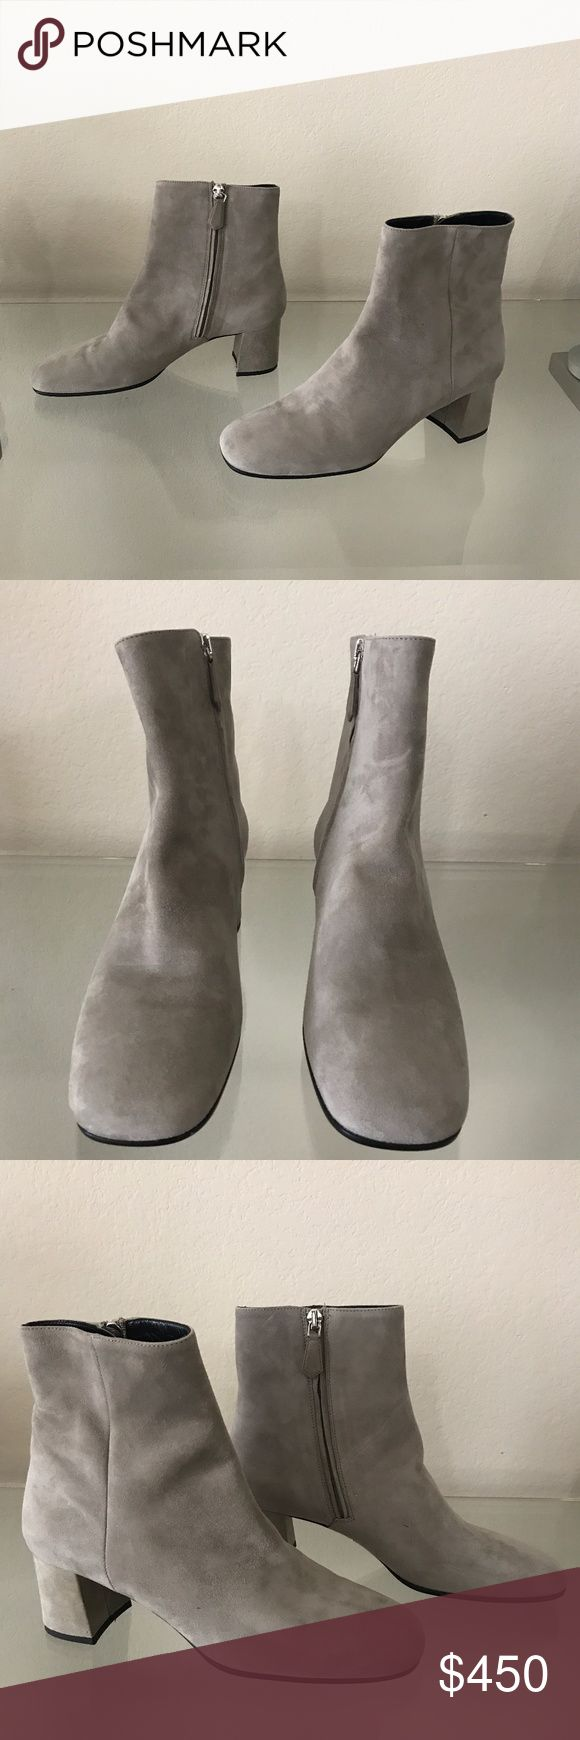 NEW PRADA SUADE ANKLE BOOTS TAUPE COLOR BRAND NEW NEVER BEEN WORN PRADA ANKLE BOOTS, TAUPE COLOR PRADA Shoes Ankle Boots & Booties